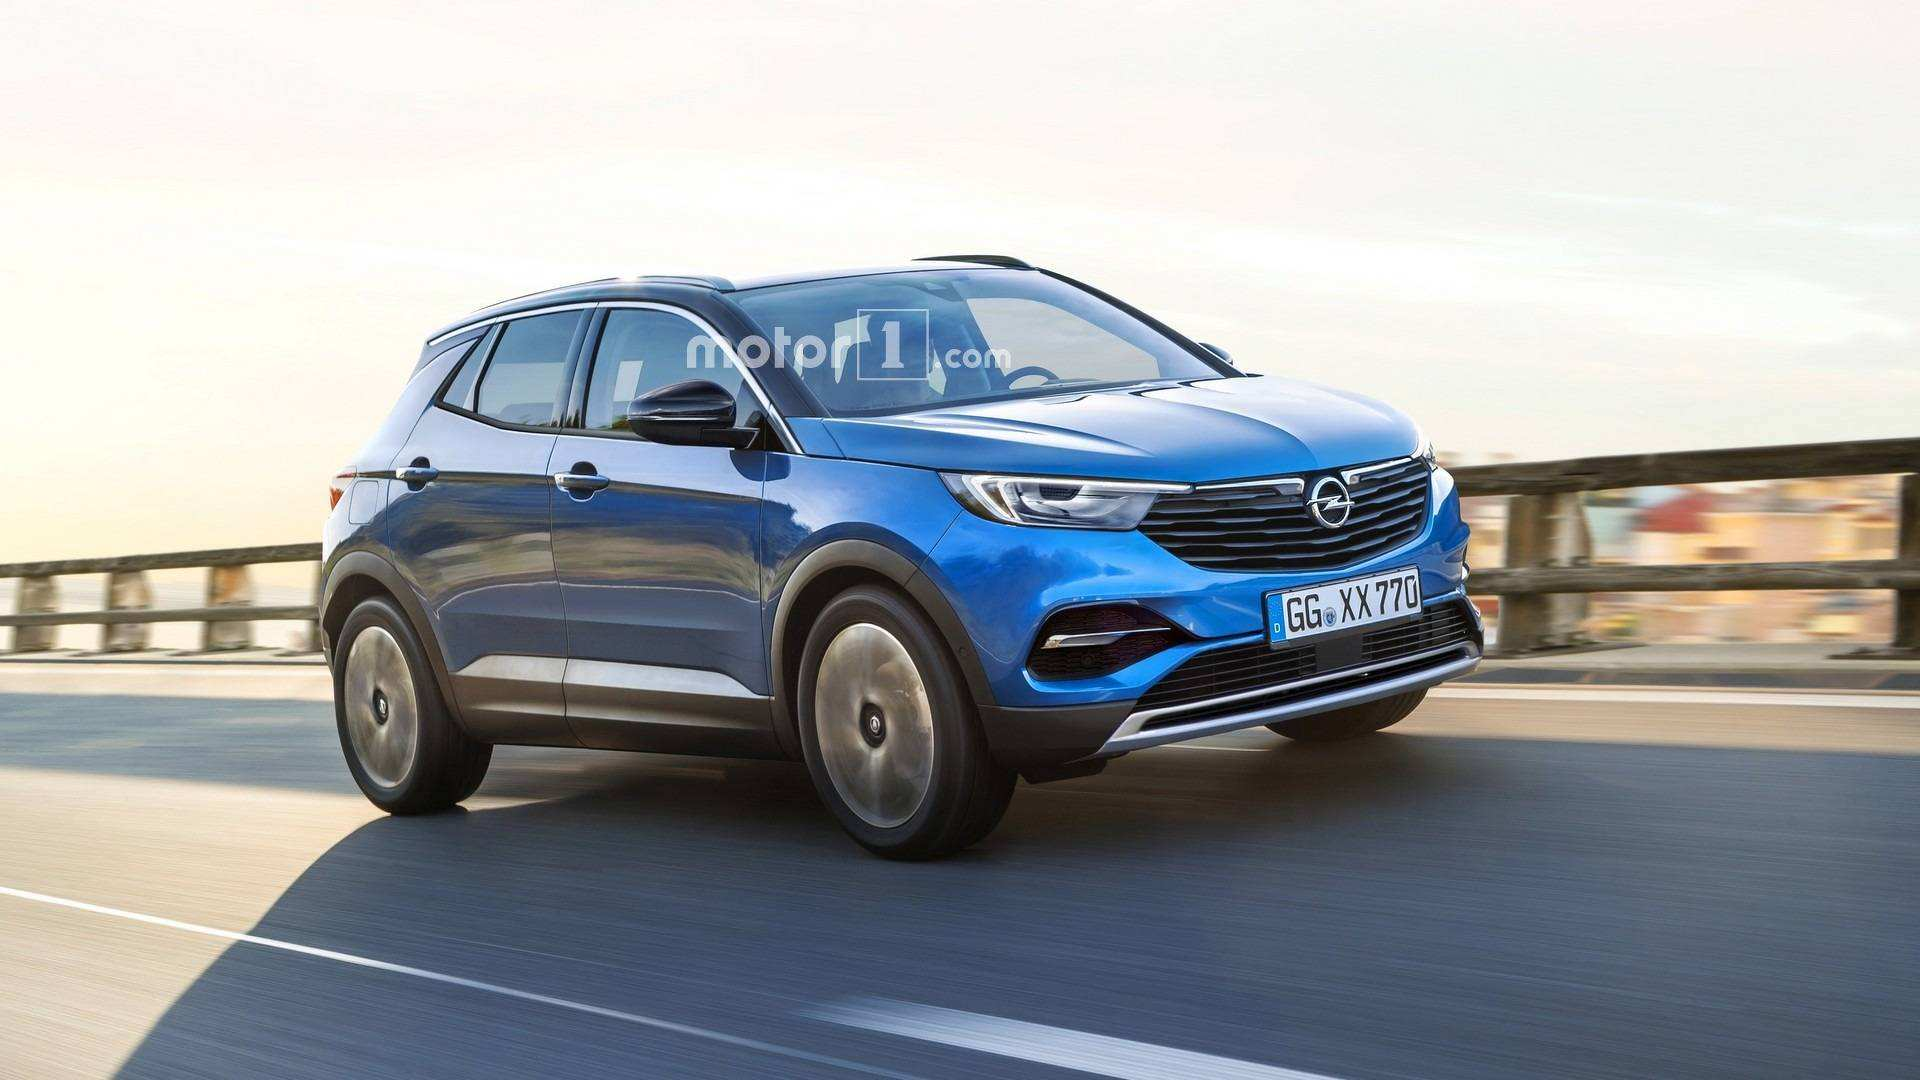 64 Best Review Opel Mocca 2020 Photos for Opel Mocca 2020